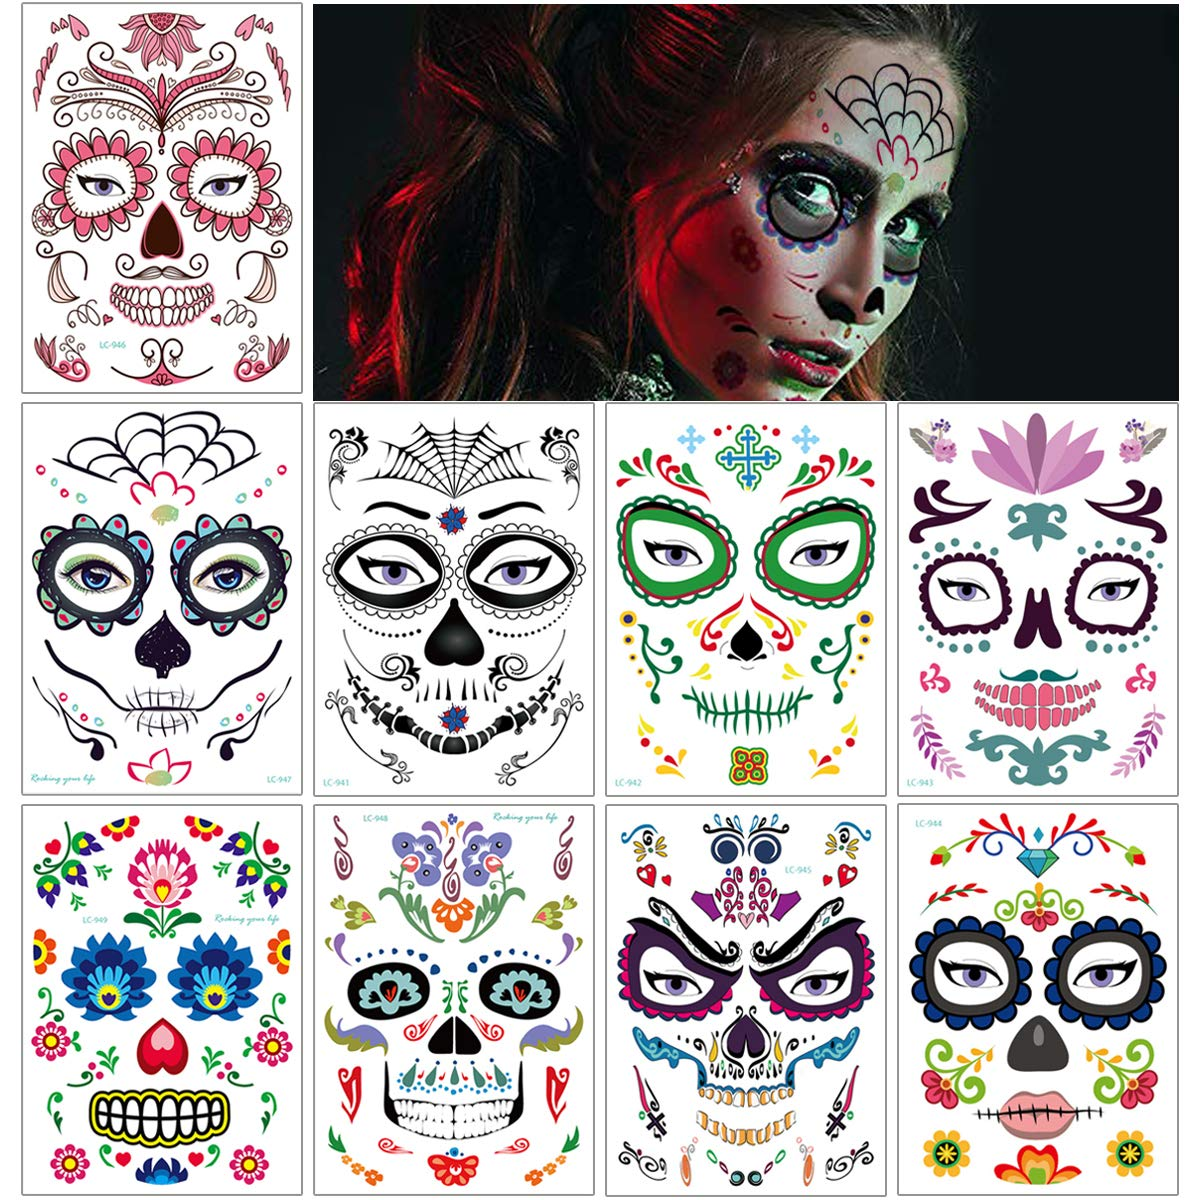 Halloween Face Temporary Tattoos Sticker for Adults Women Man Party Makeup Day of the Dead Sugar Skull Skeleton Art Waterproof Design Tattoos Halloween Decoration Favor Supplies 9 Sheets